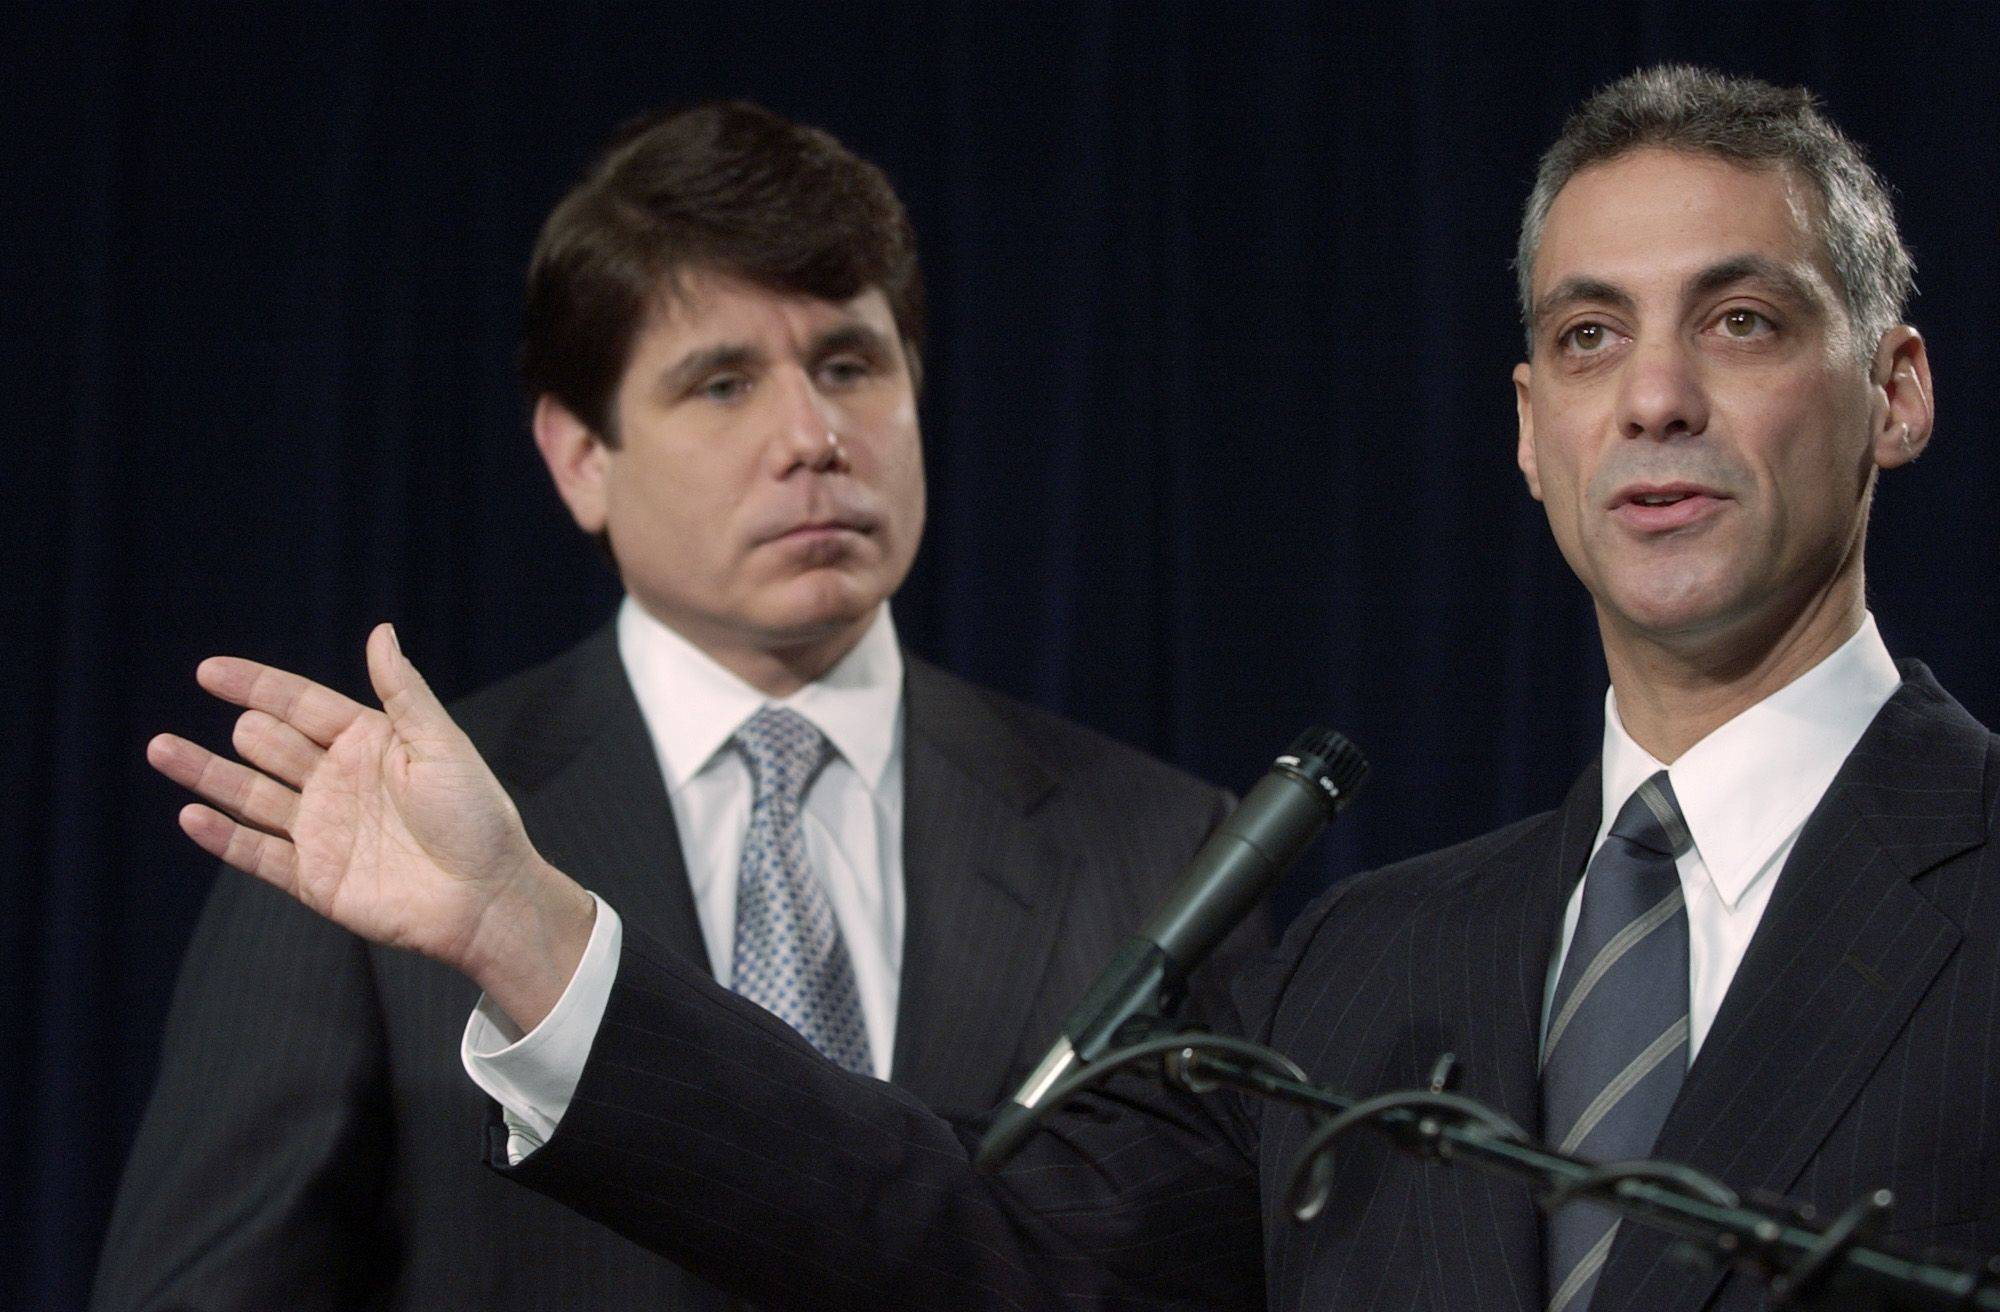 Transcript: Emanuel asked Blagojevich for favor